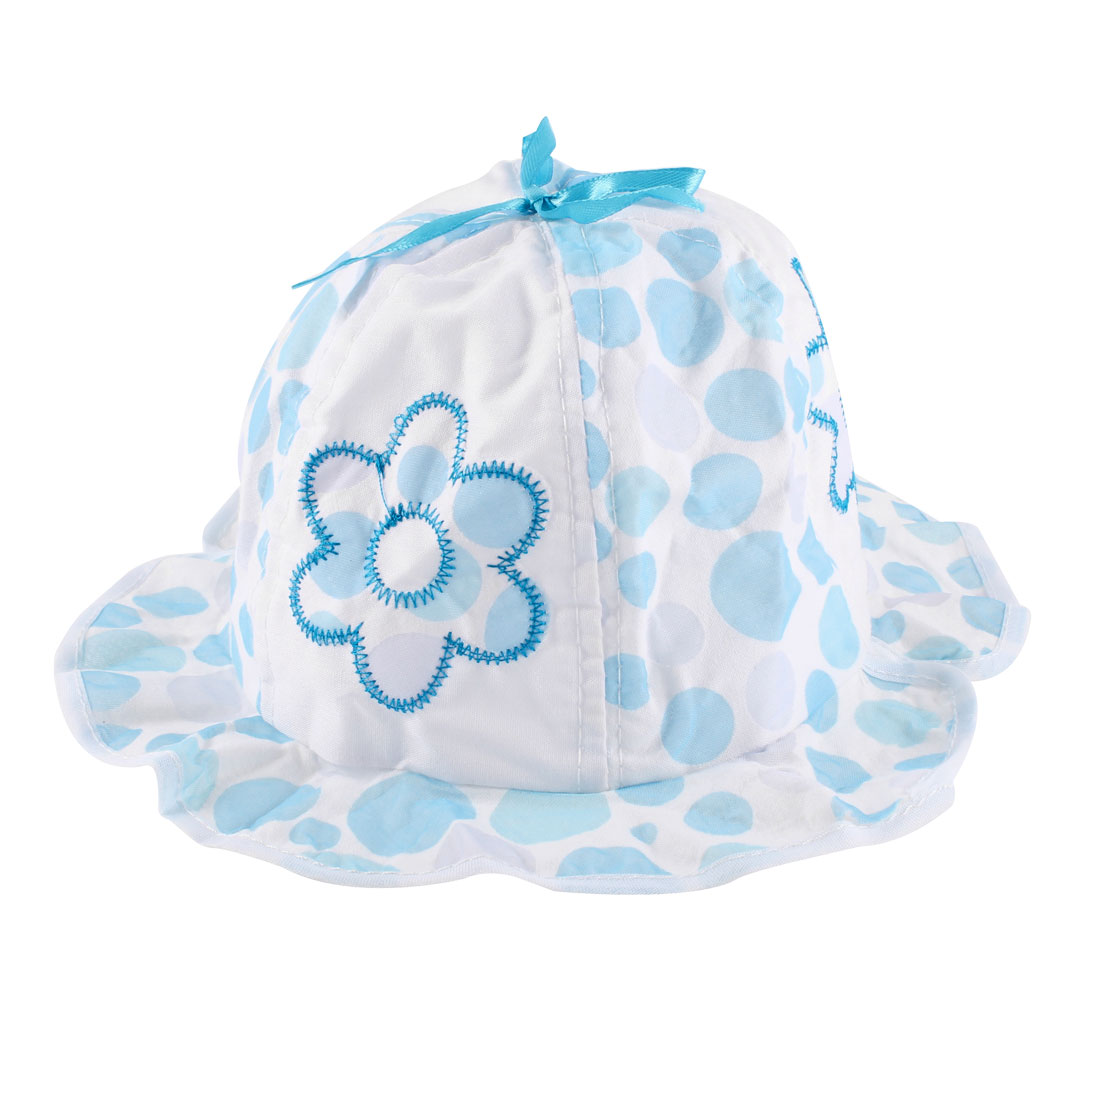 0-6 Months Baby Girl Dots Pattern Cotton Bob Hat Light Blue White w Stretchy Neck Strap